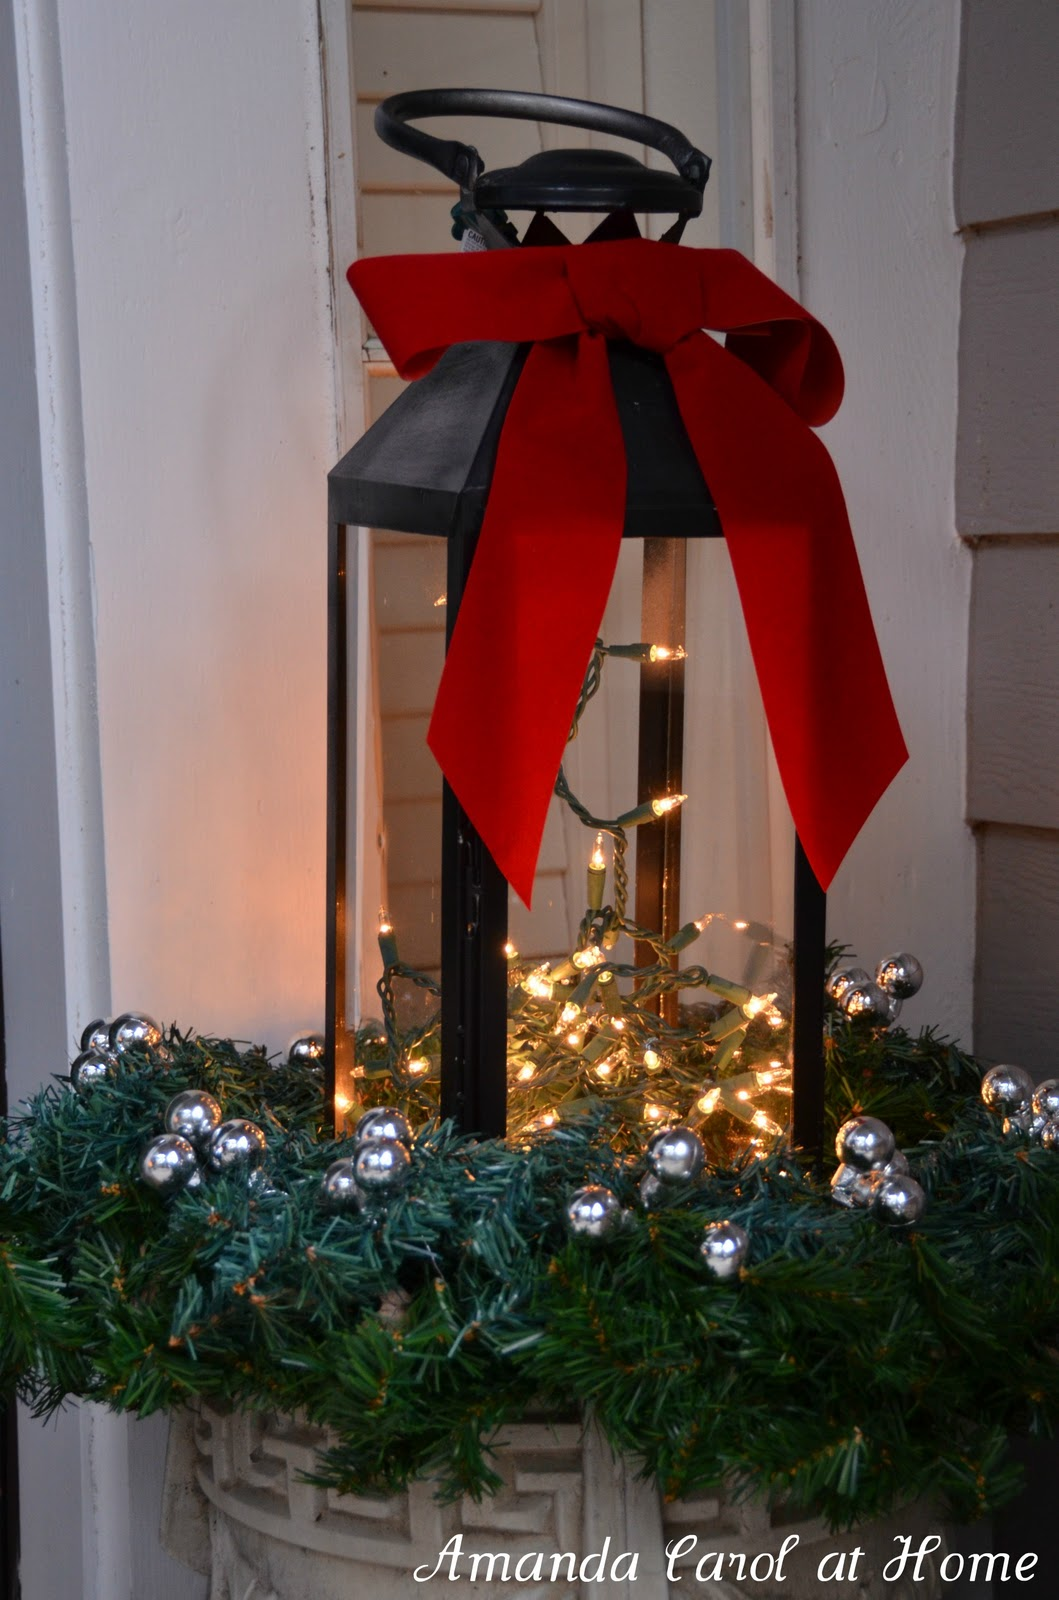 Outdoor christmas window decorations - Lantern In Outdoor Planter For Winter Amanda Carol At Home Via Remodelaholic